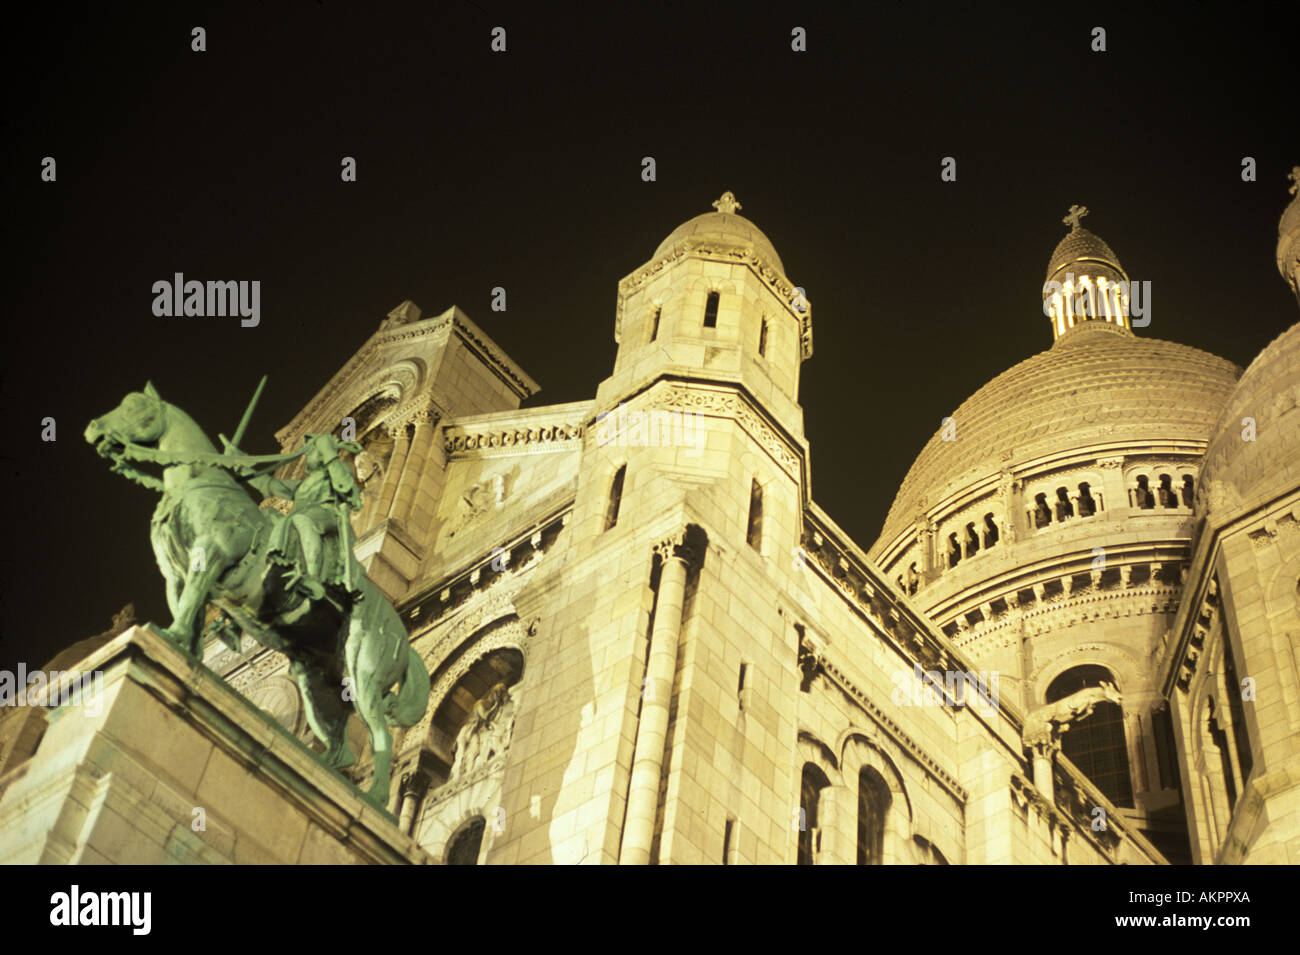 Night view of the Basilica of the Sacred Heart of Paris, commonly known as Sacré-Cœur Basilica and often simply Sacré-Cœur - Stock Image